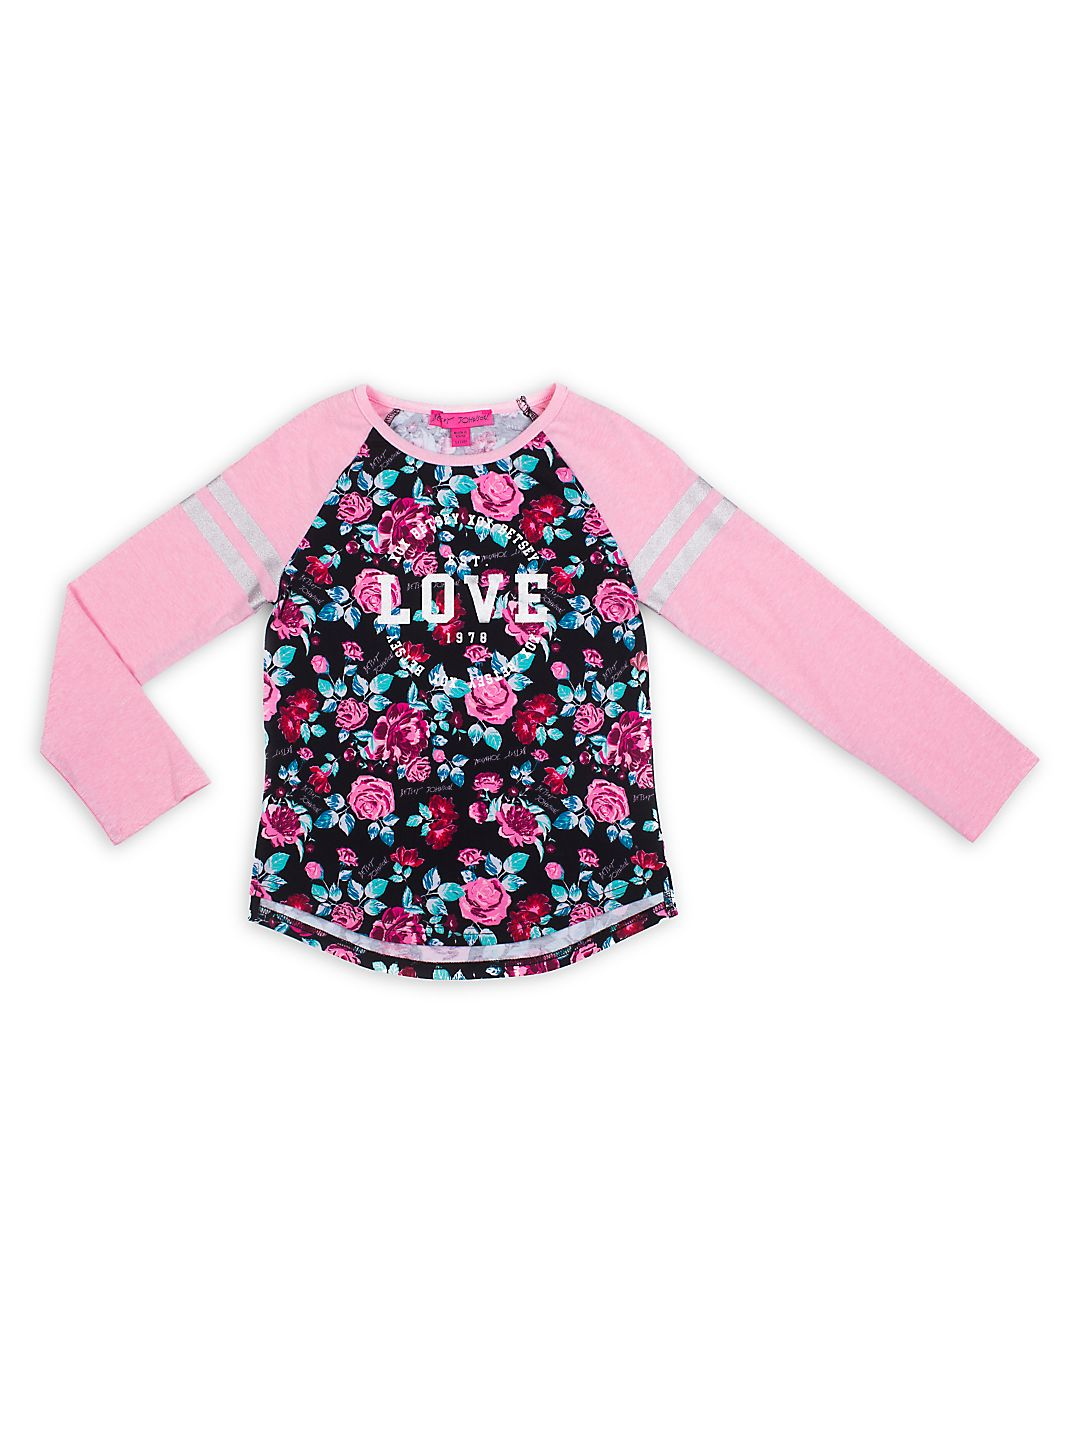 Girl's Love Floral Knit Top